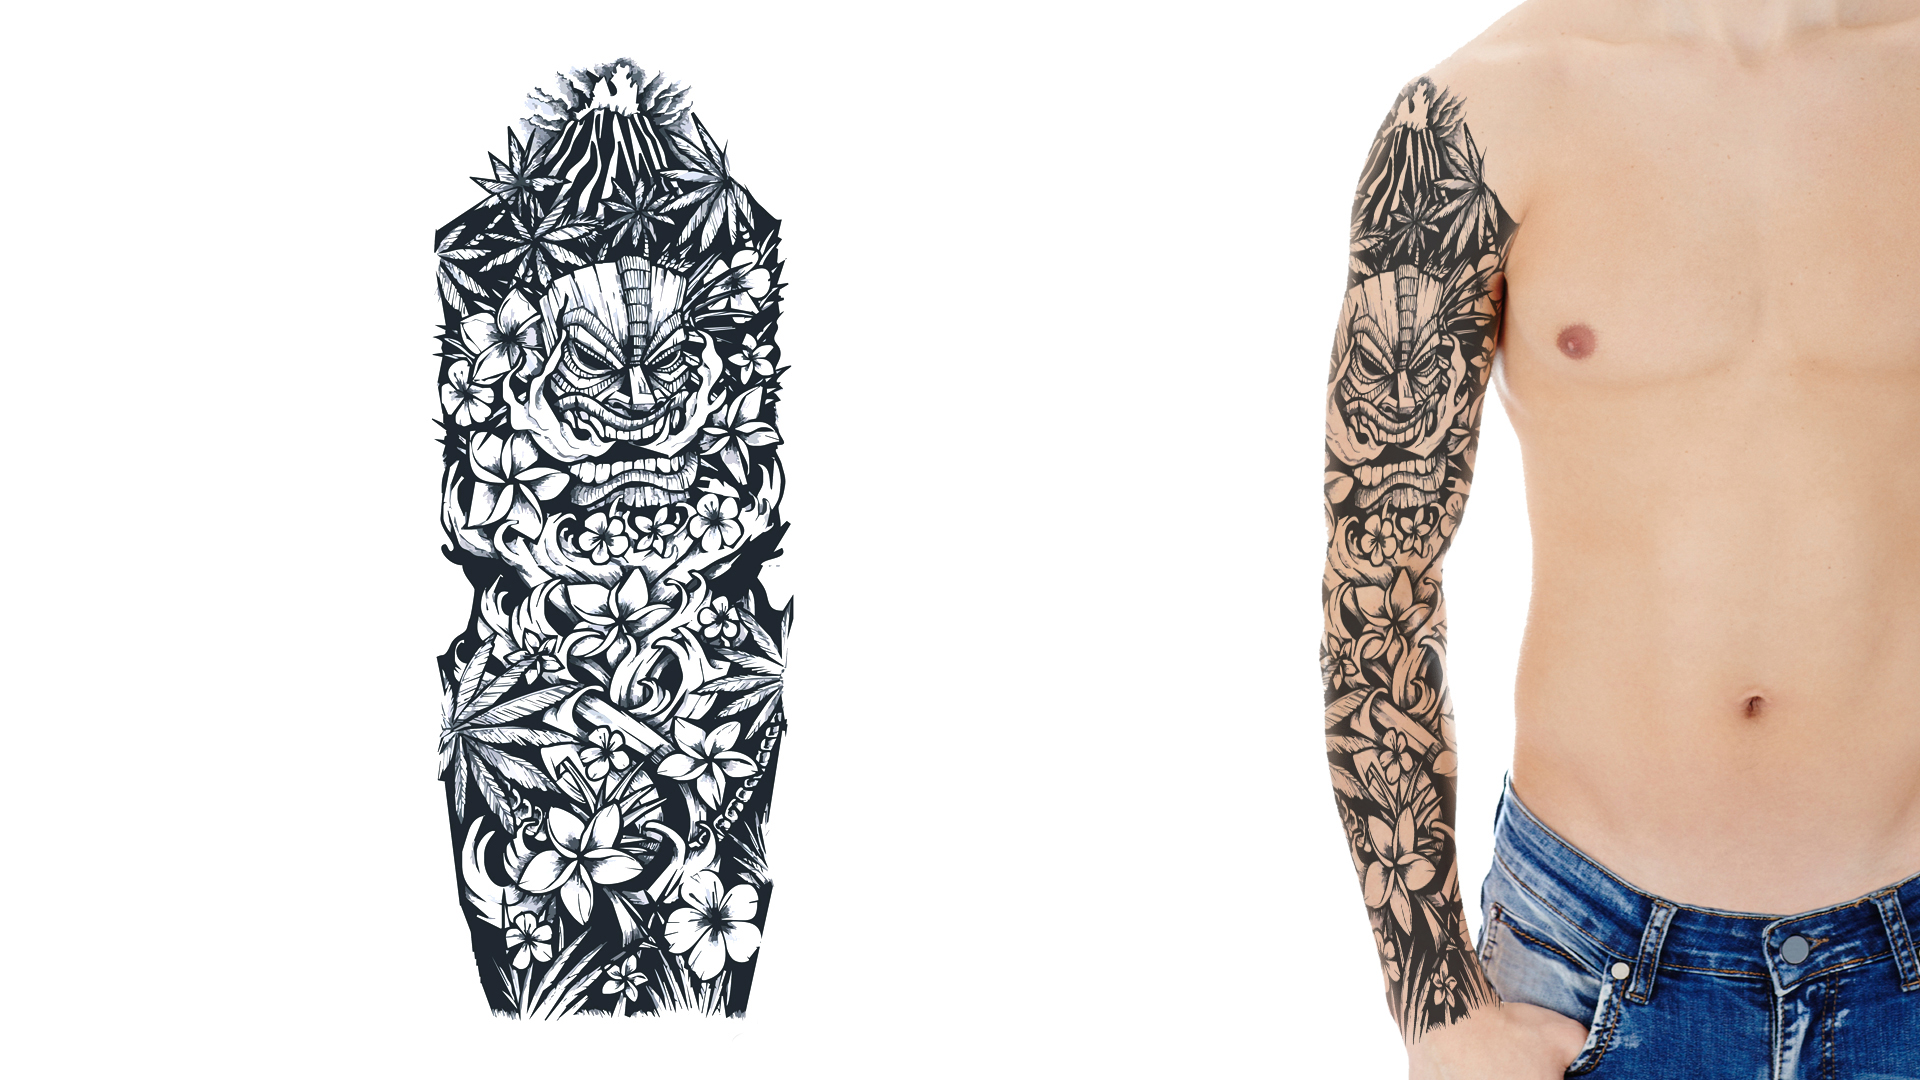 Help Designing A Tattoo Sleeve